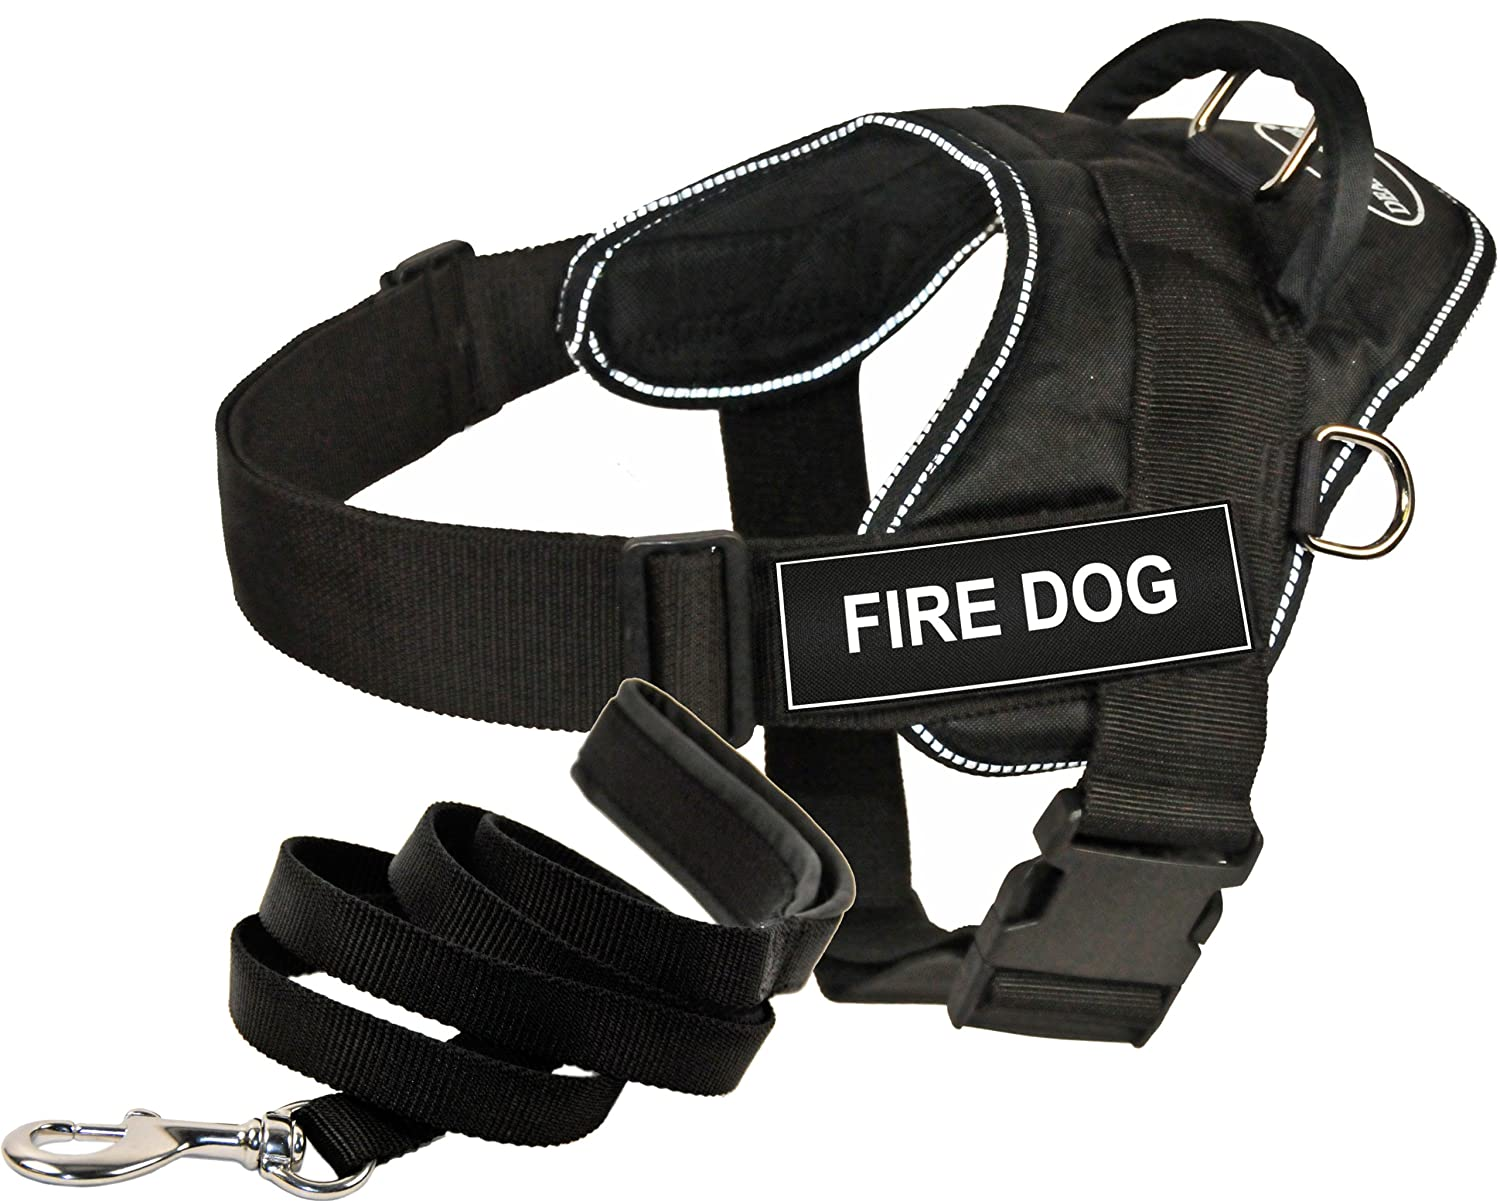 Dean and Tyler Bundle One DT Fun Works  Harness, Fire Dog, Reflective, Medium (28  34 ) + One Padded Puppy  Leash, 6 FT Stainless Snap Black